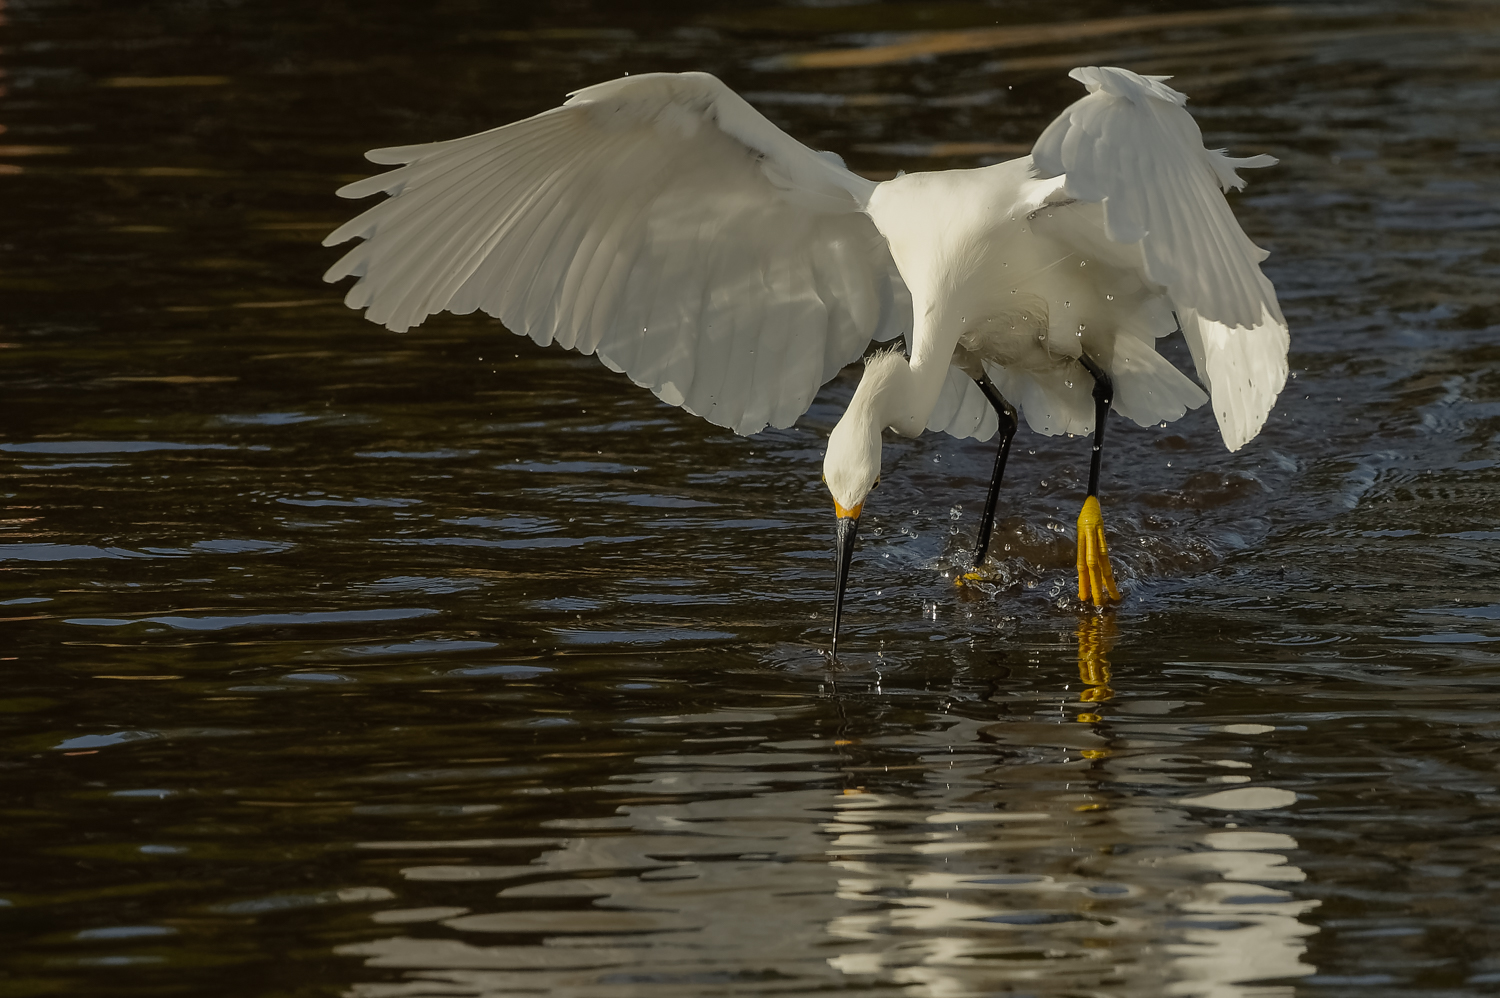 Snowy Egret, Striking while Foot-dragging, Merritt Island NWR (TX), 2015